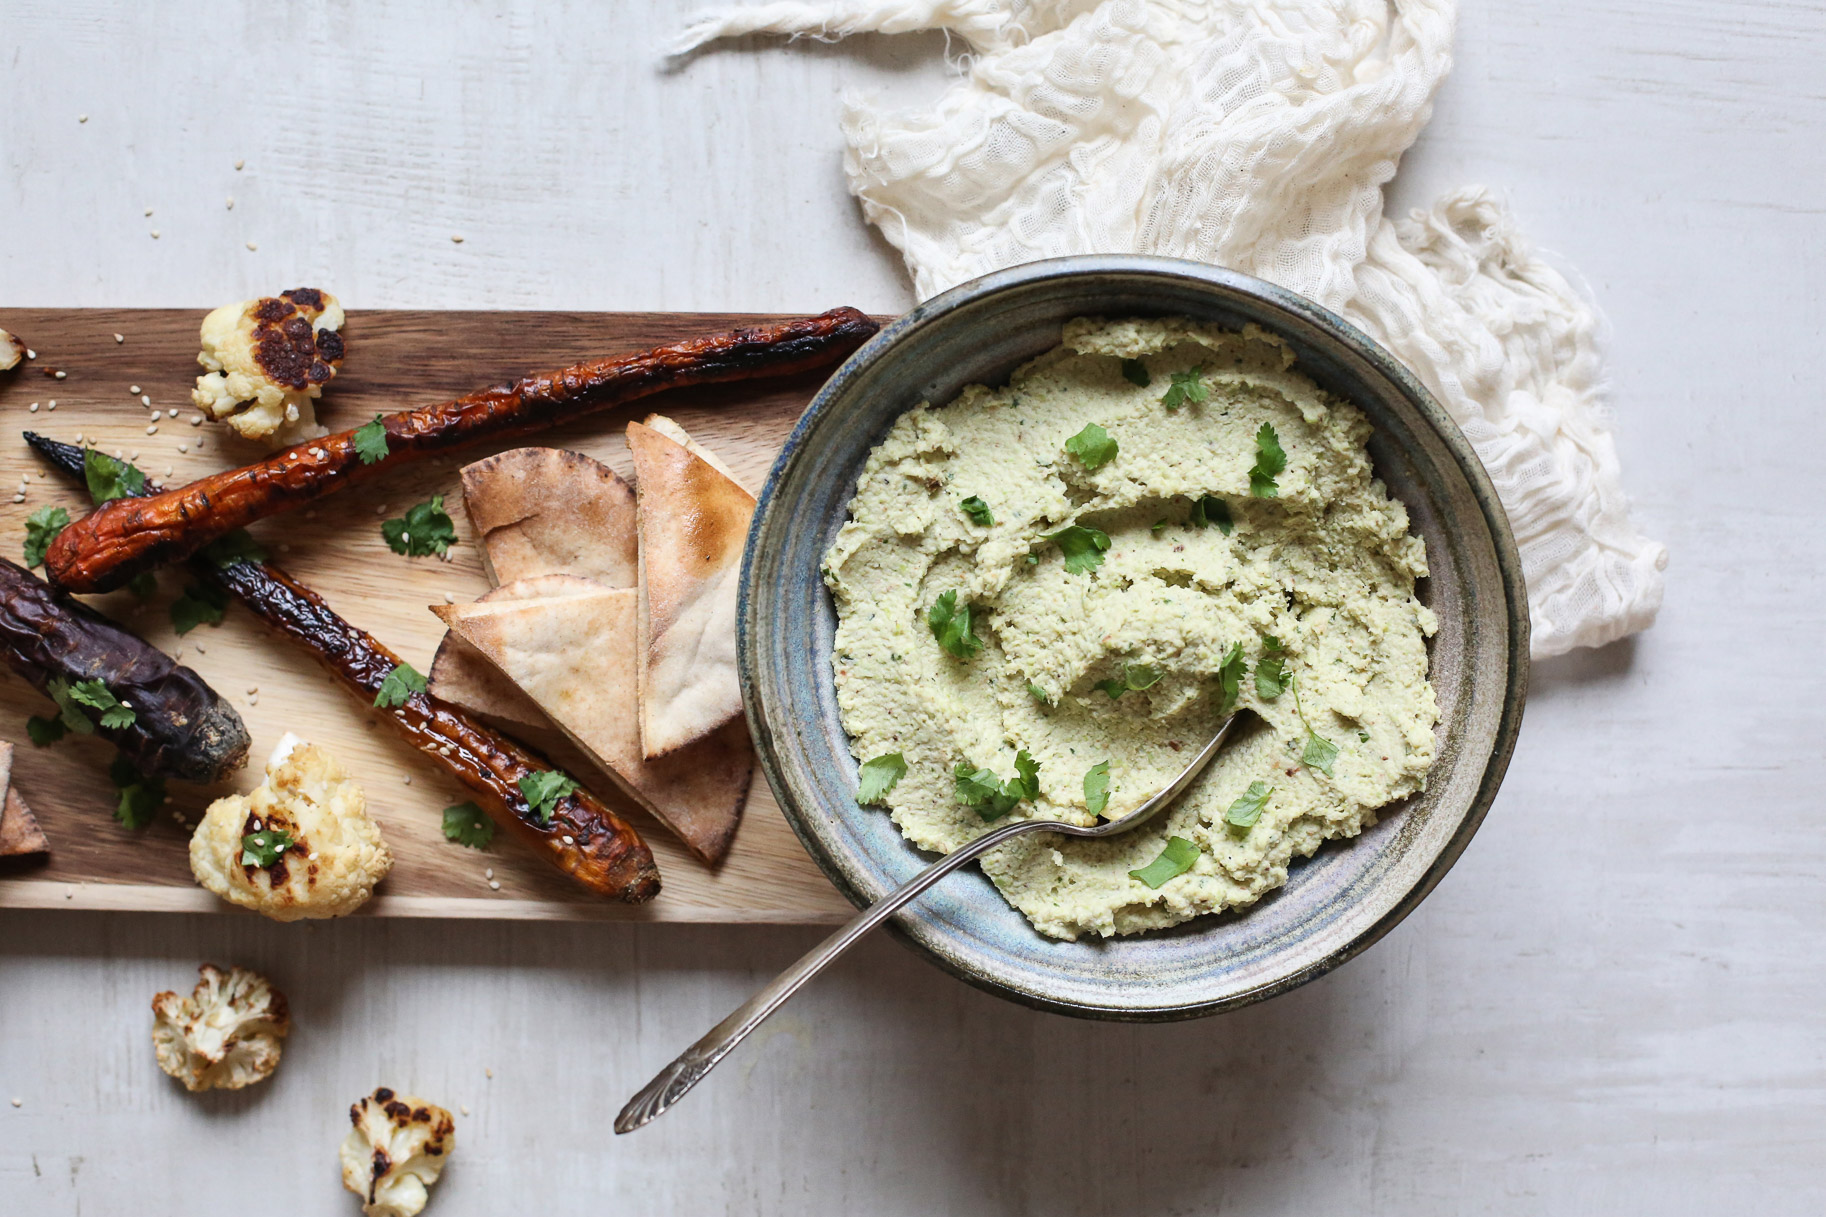 ROASTED CAULIFLOWER & EDAMAME HUMMUS - yield approximately 3 cups